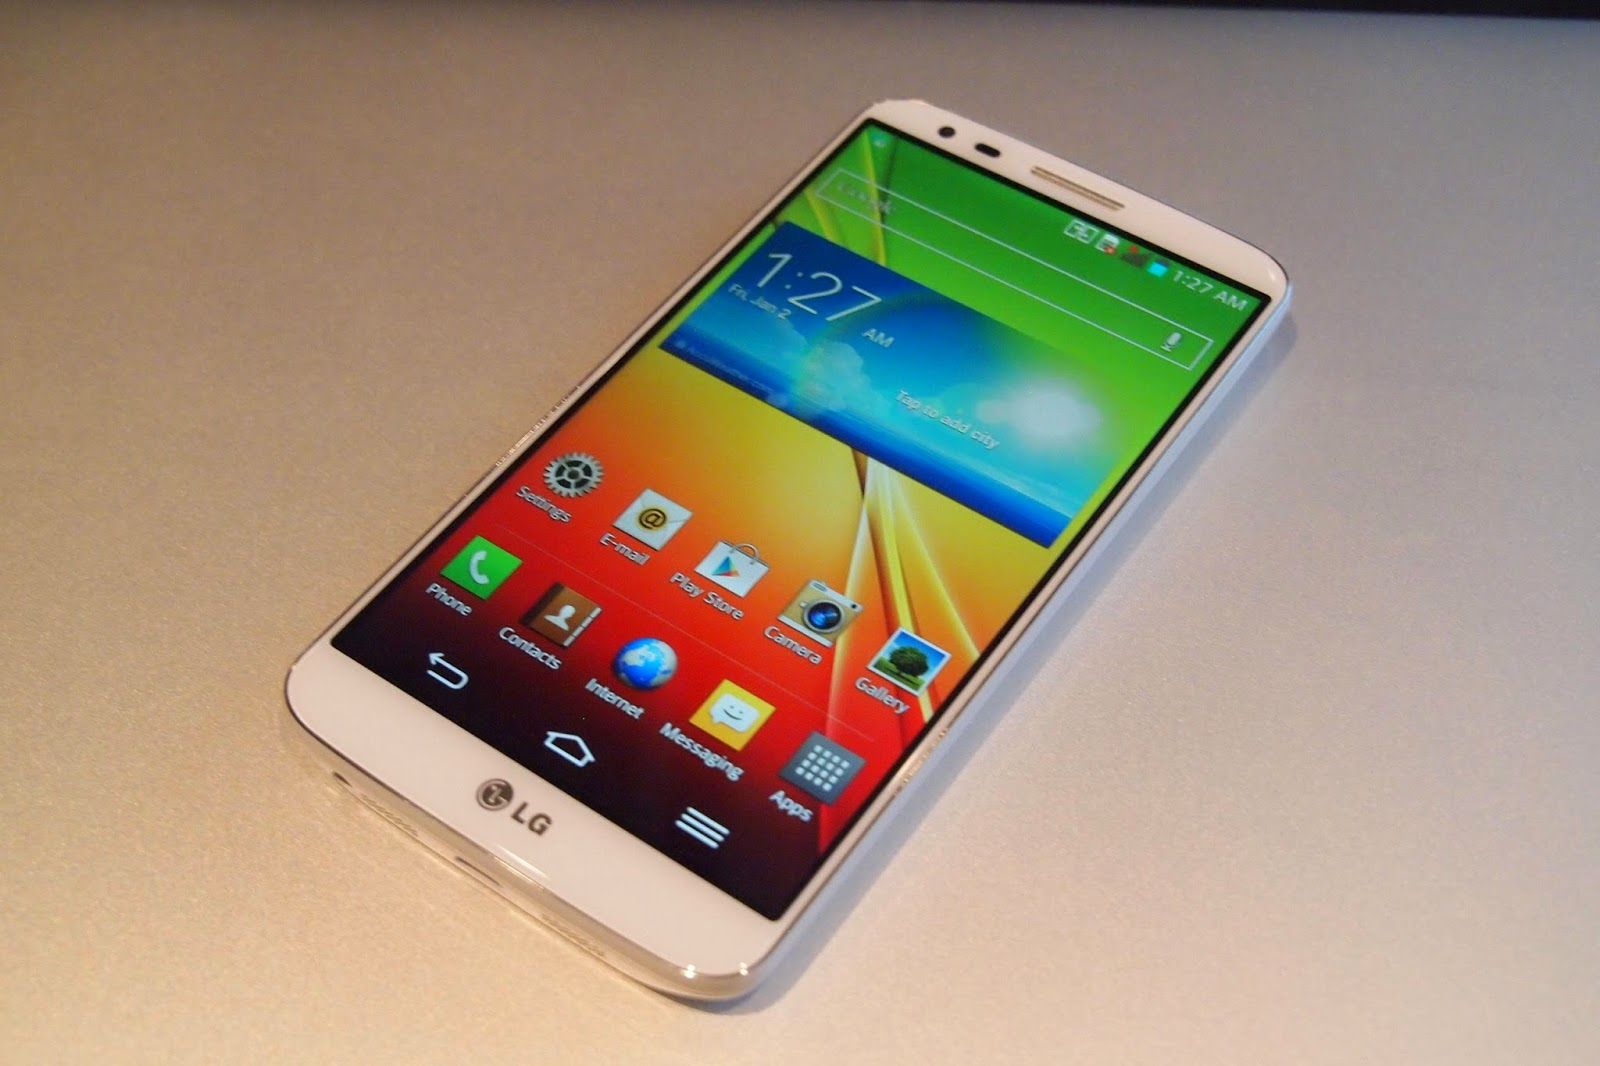 LG G2 Specifications,Review And Price